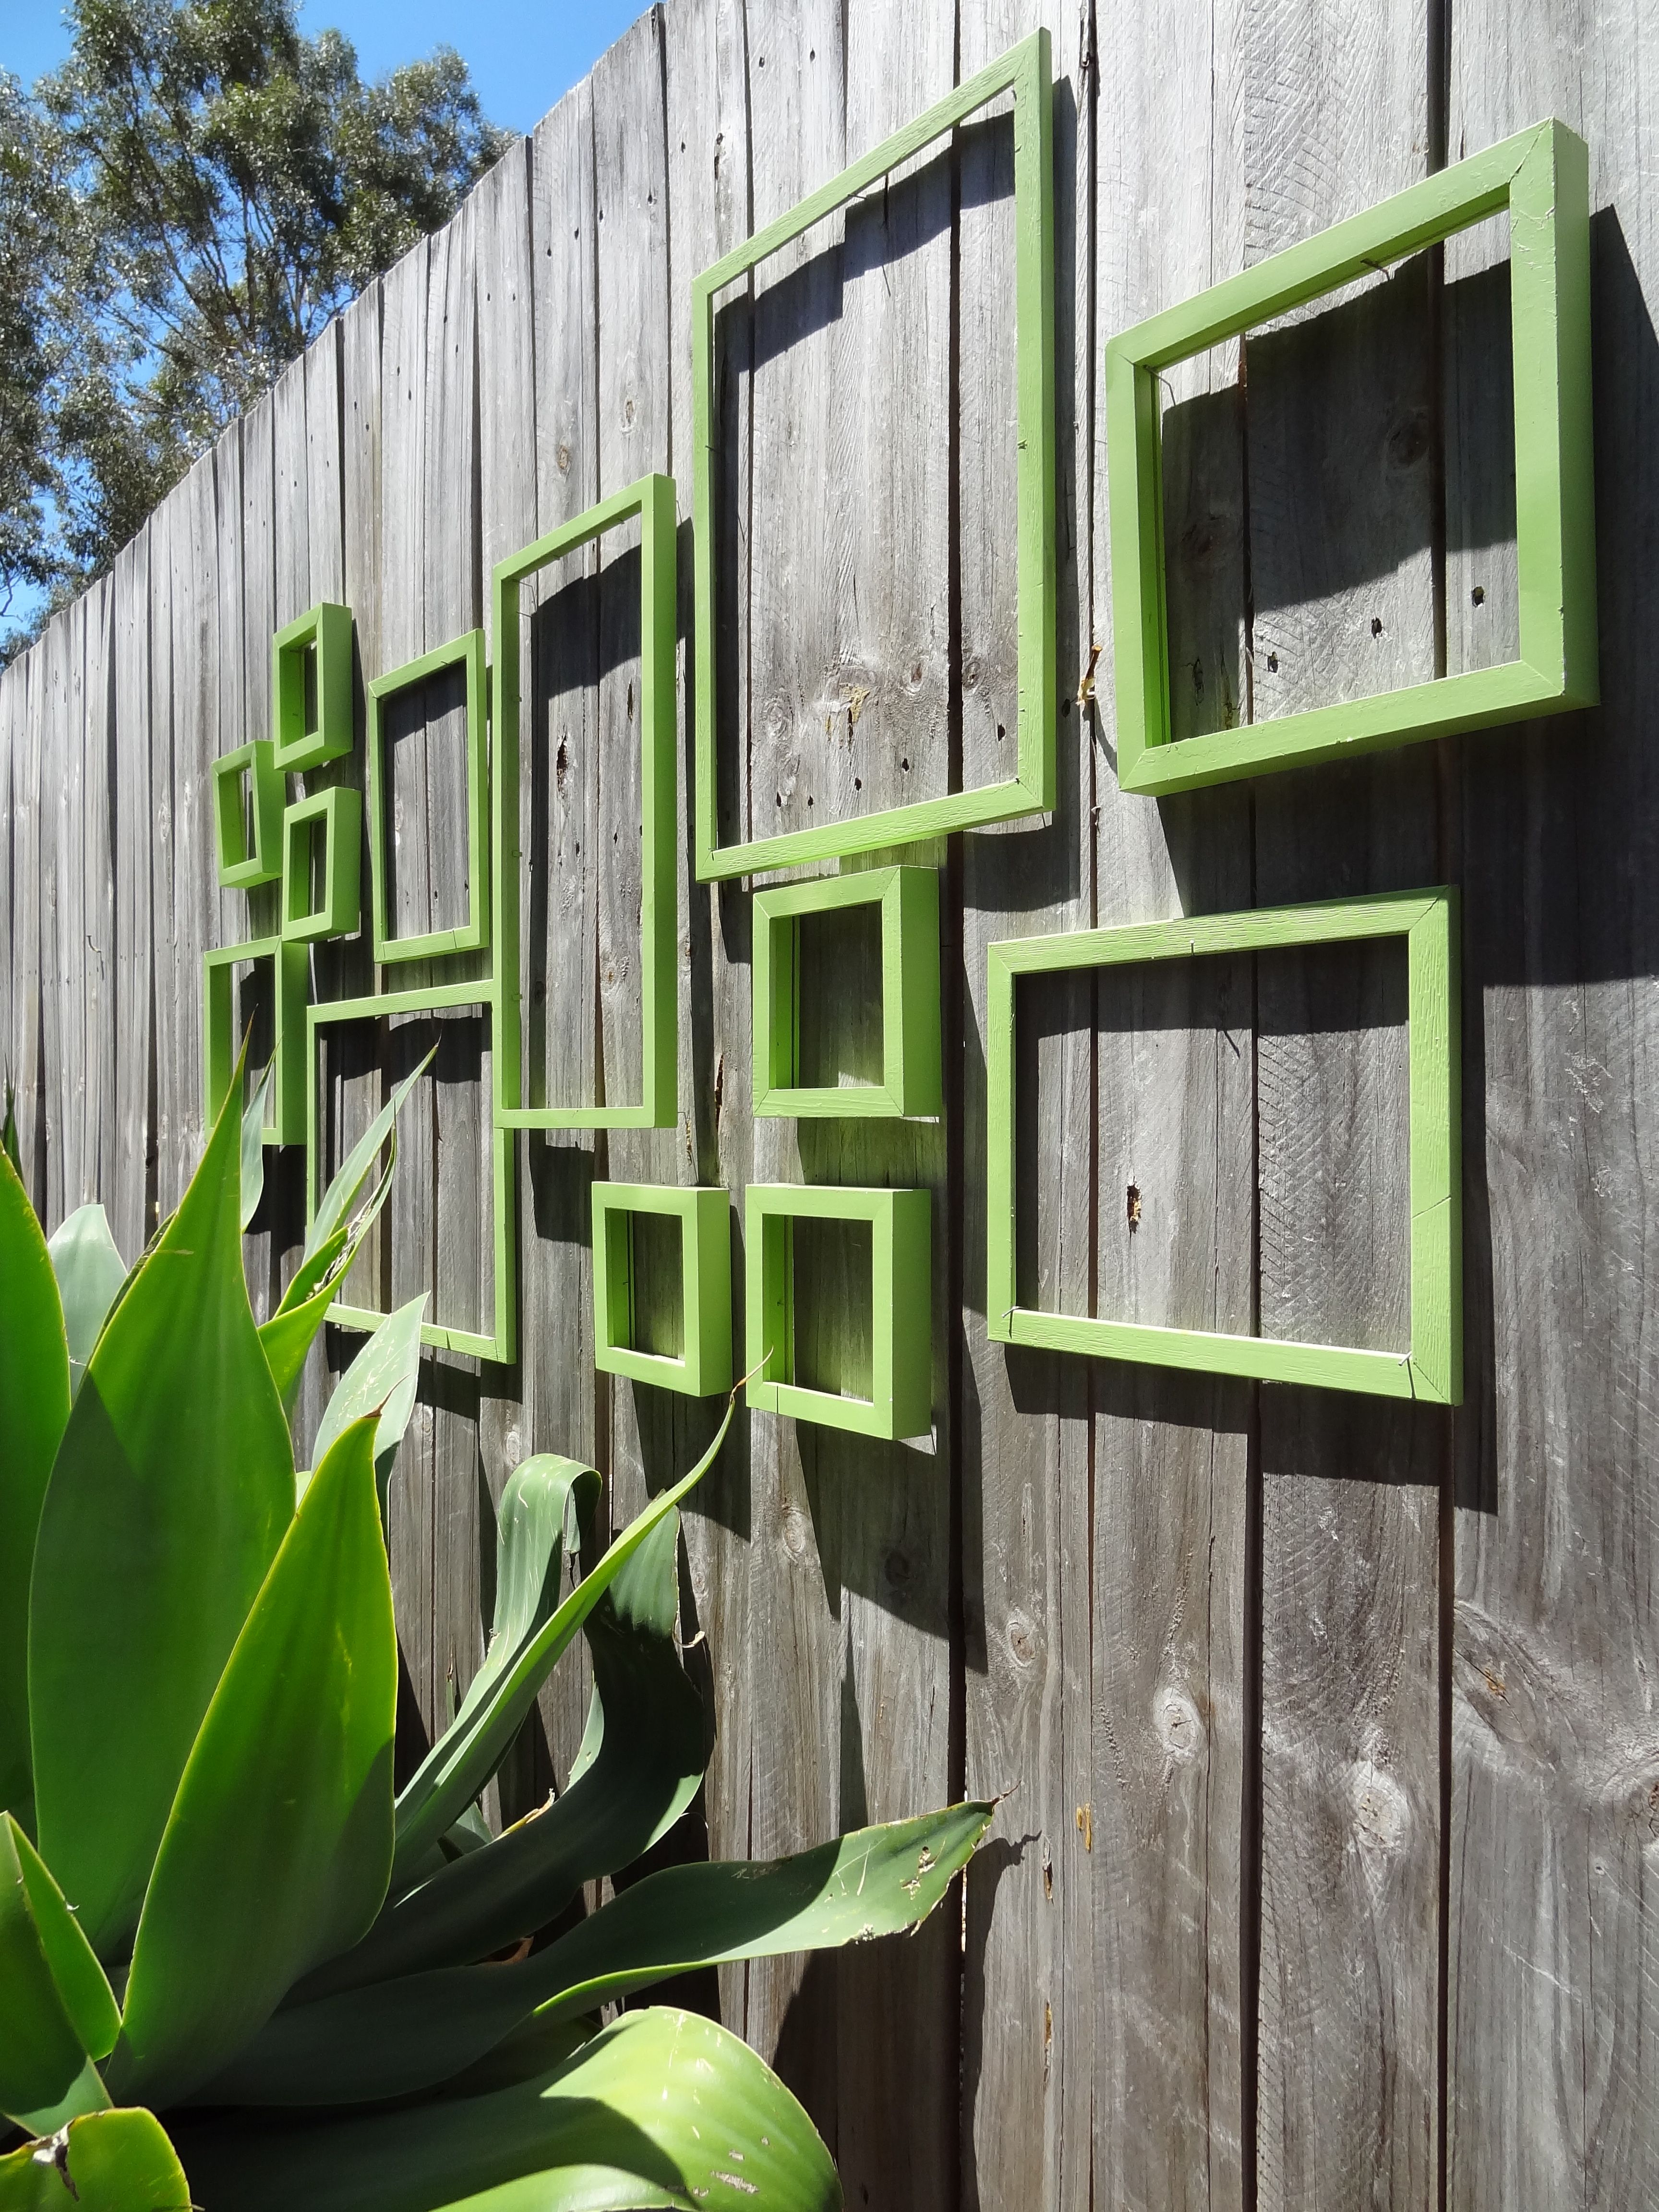 Outdoor Wall Art Frame Collage Halbwnde Garten Ideen Zaun in 16 Some of the Coolest Ideas How to Craft Backyard Wall Decor